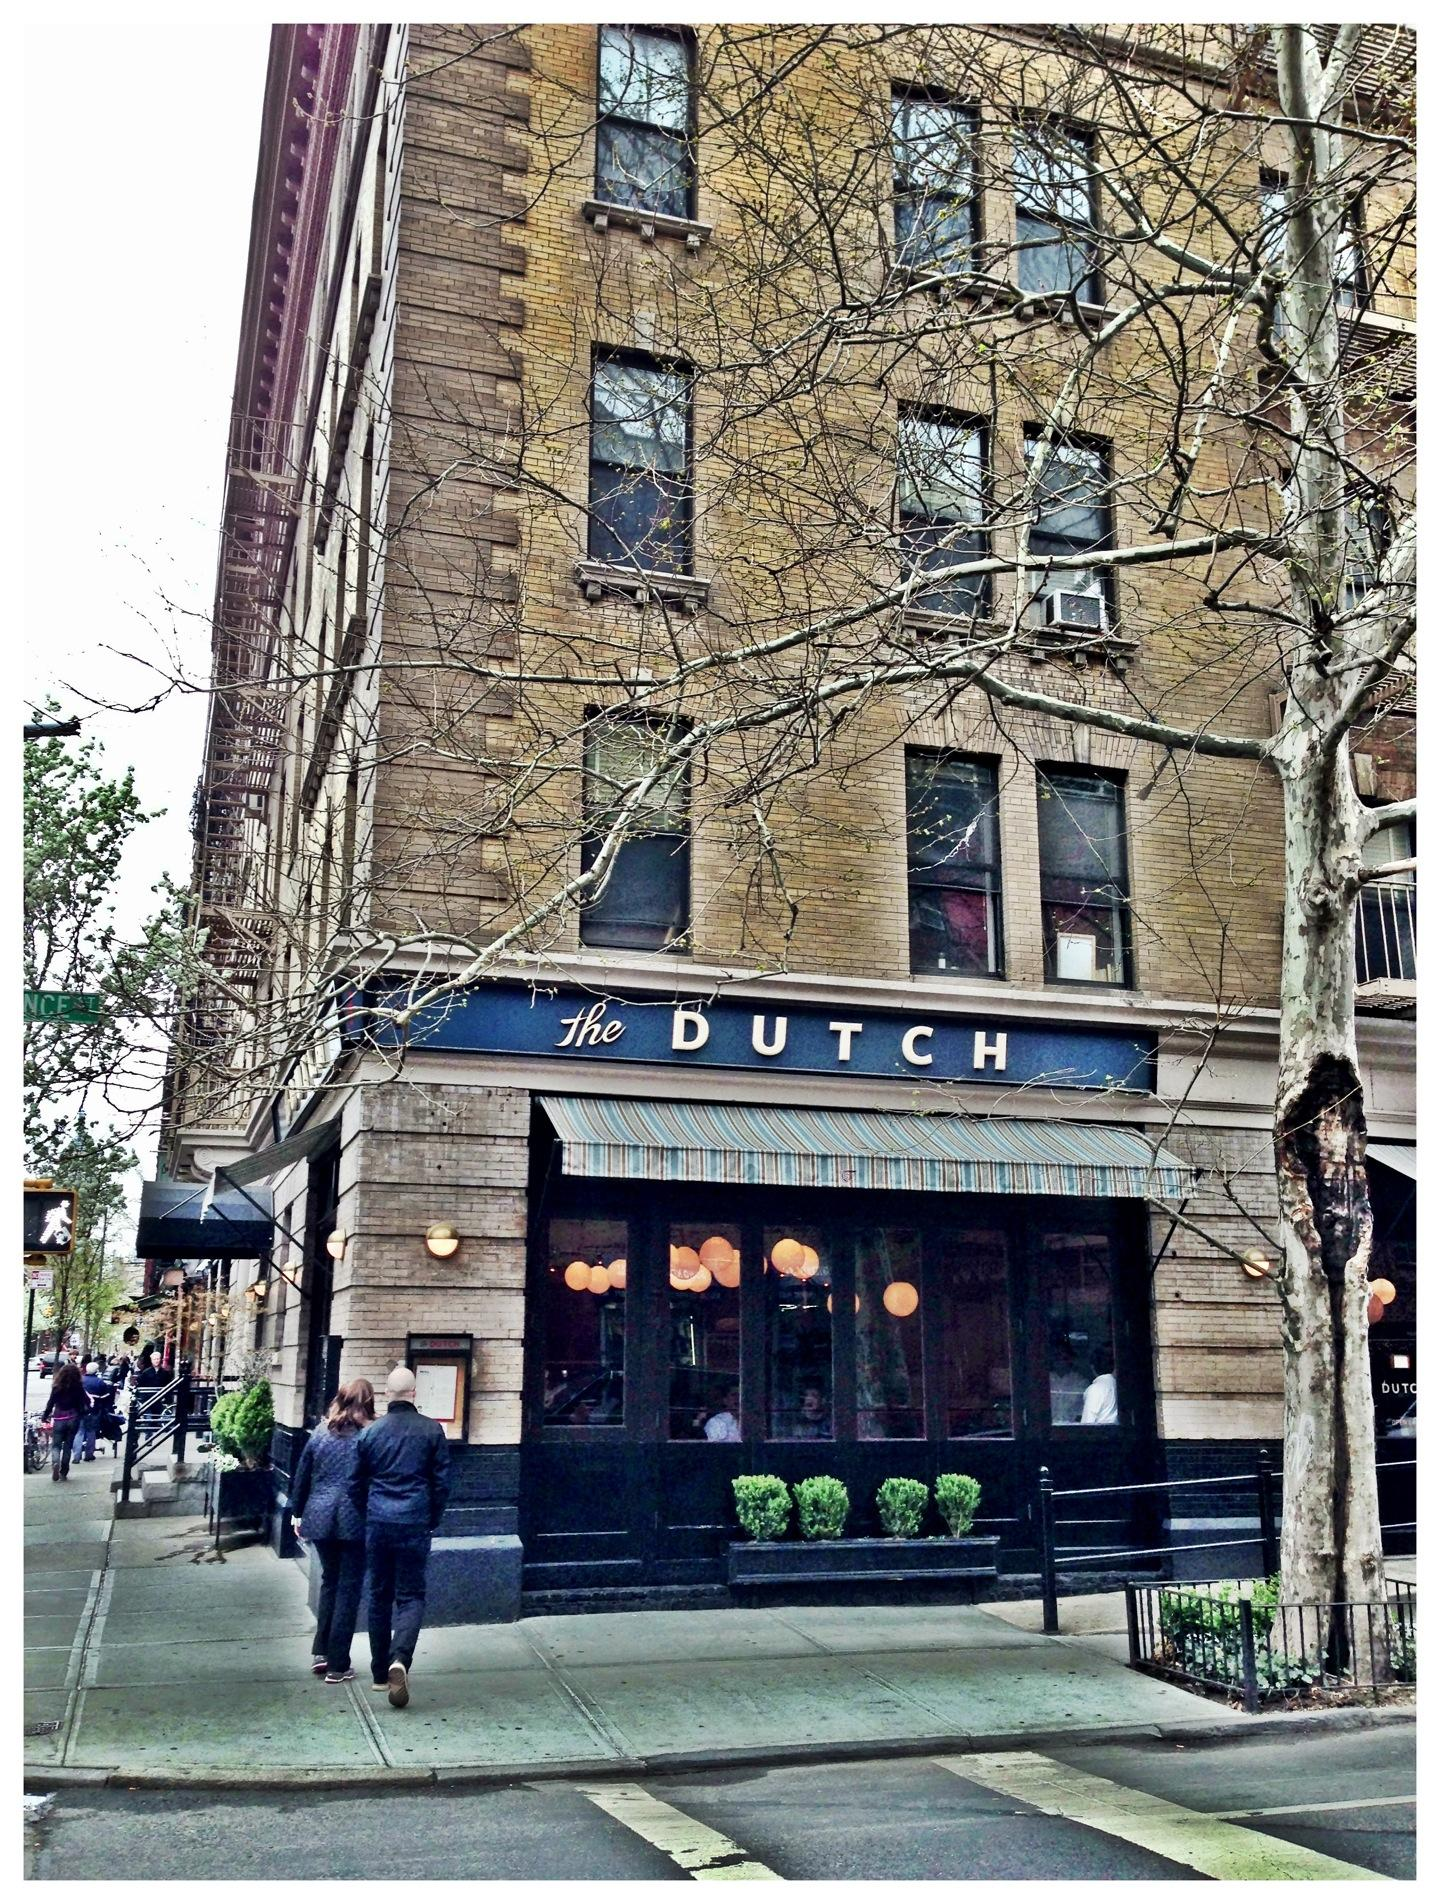 Reasons to eat out in Greenwich Village - The Dutch